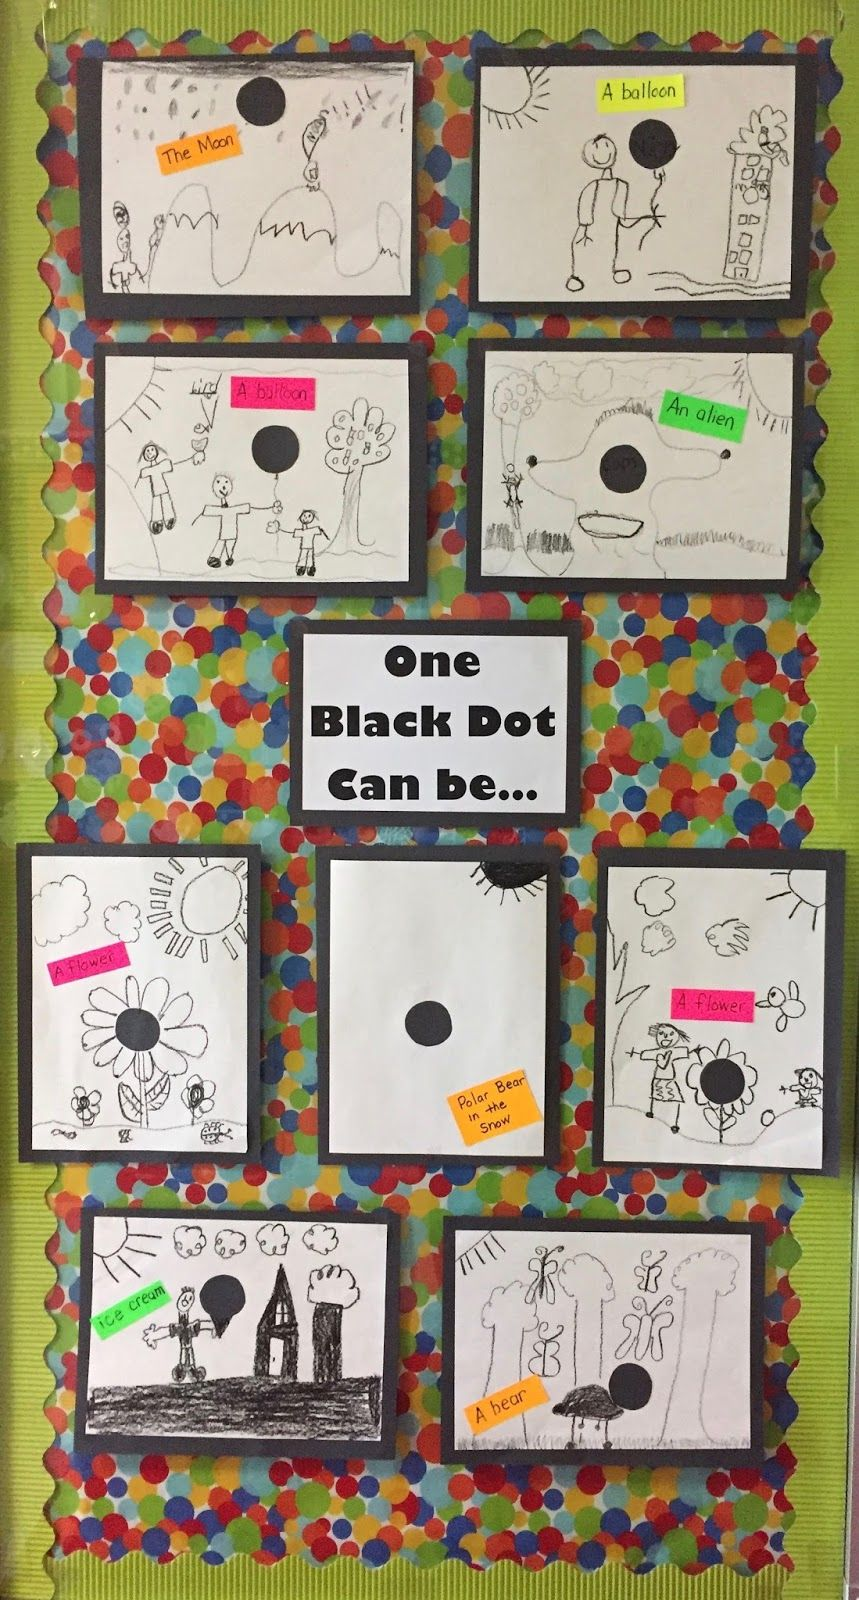 One Black Dot - The Dot by Peter H. Reynolds - creating art with dots - coffee filter art, circle painting, The Day the Crayons Quit and more. https://firstieland.blogspot.com/2017/05/what-can-you-make-with-dot.html